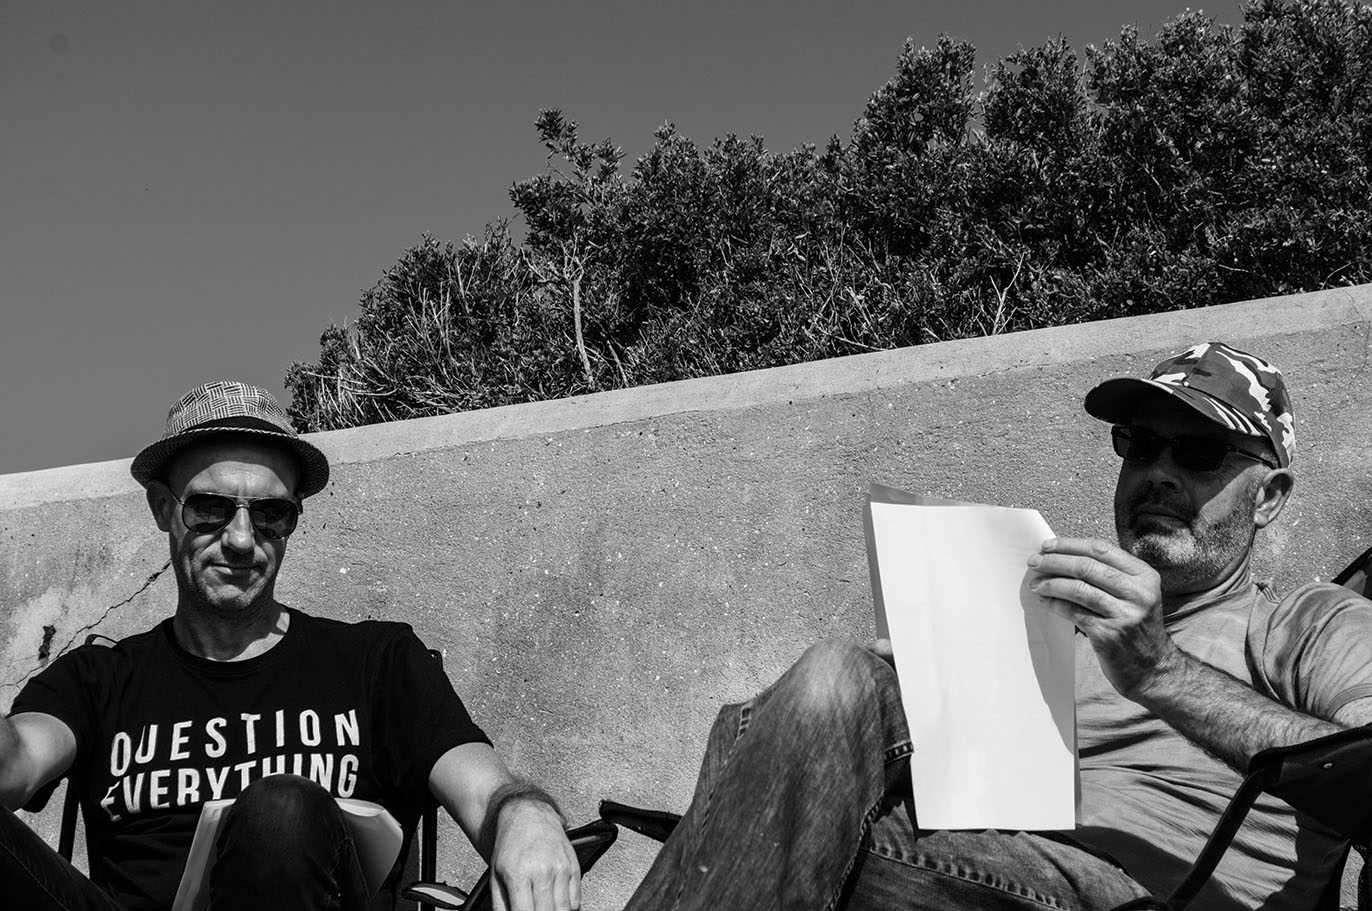 Postcard image 13 - The Island Play: Reading (#96), featured performers: Lance Youston (L), Michael Morgan (R).Photography: Zac Schubert-Youston.Creative Occupation stock image of filming The Island Play (written by Scott Welsh), at South Channel Fort Island, 2018.